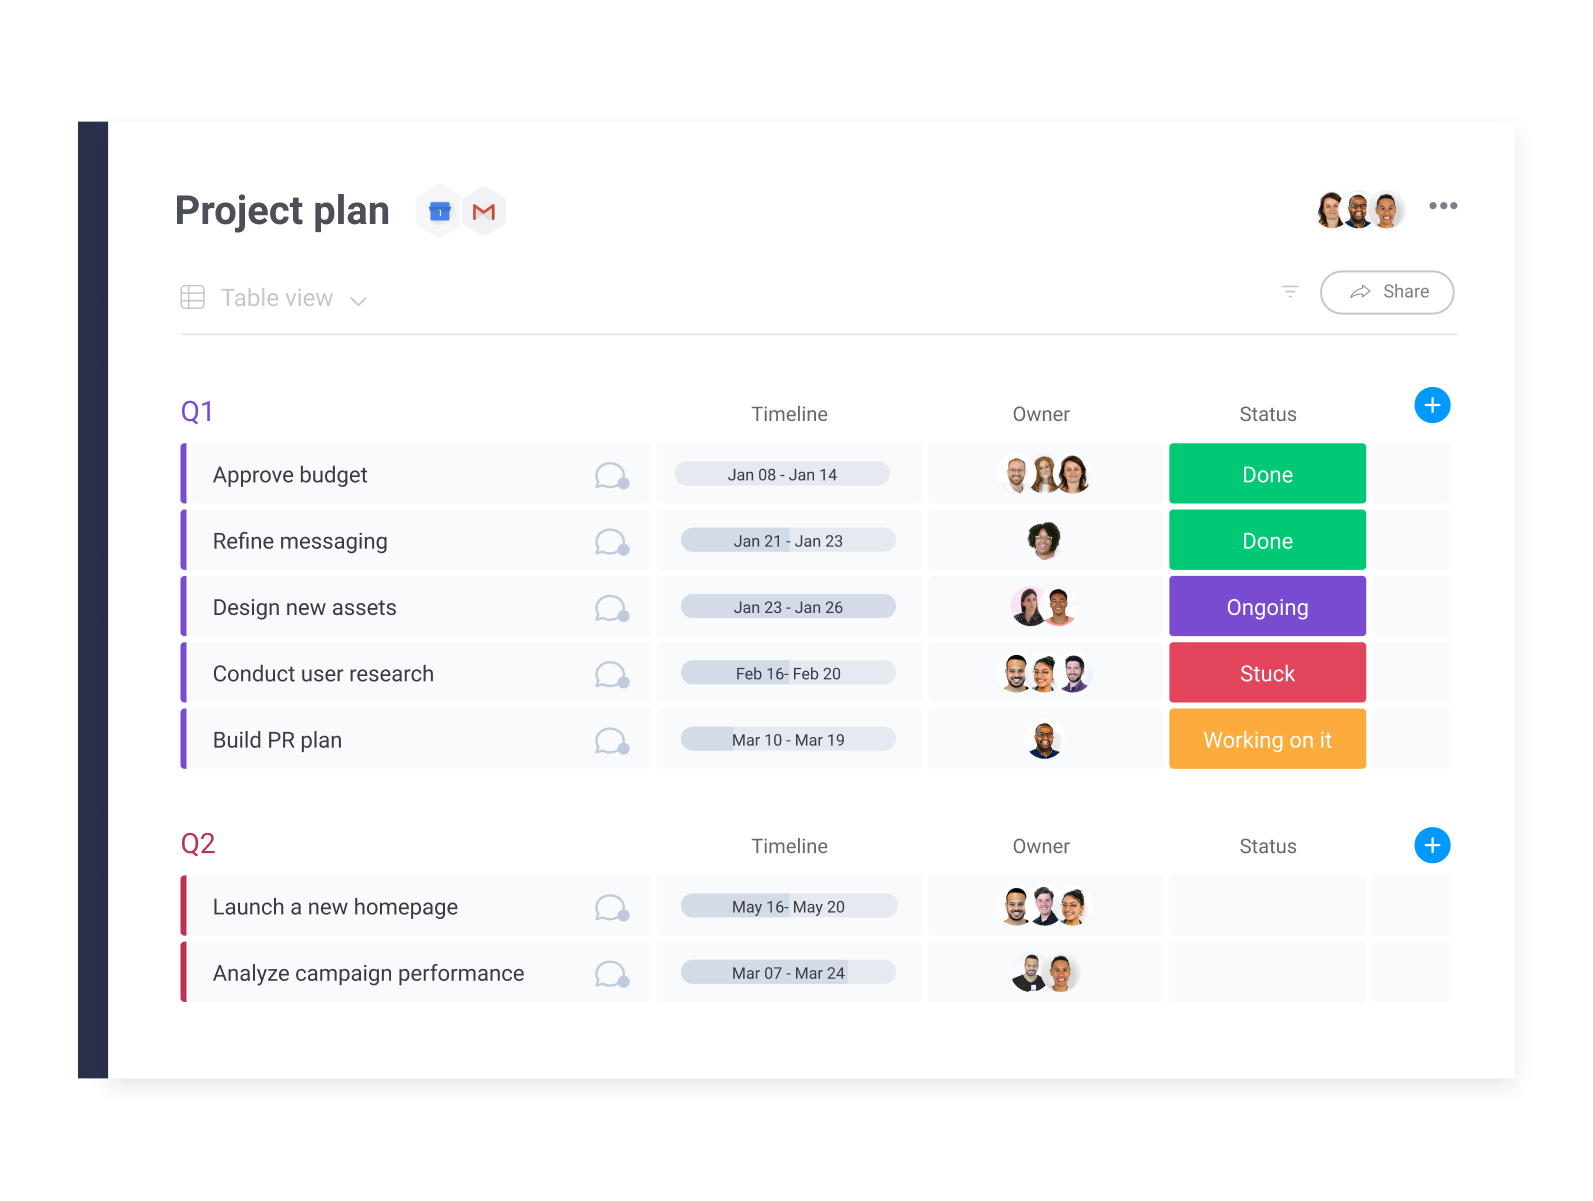 A new way to manage your Projects! Plan. Organize. Track. In one visual, collaborative space.